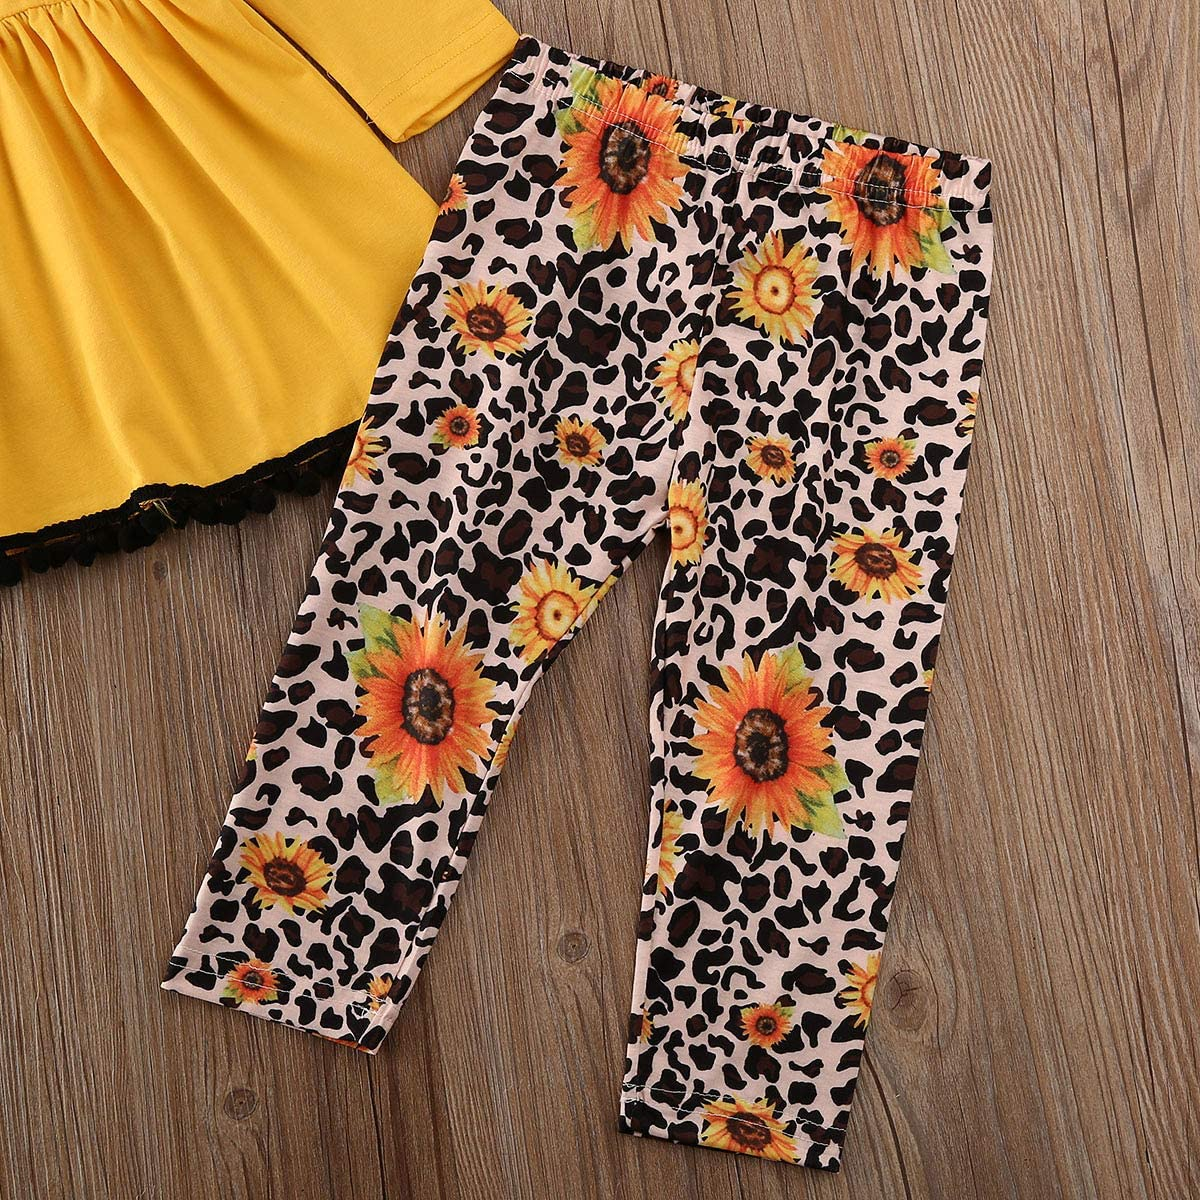 2Pcs Kids Toddler Baby Girl Long Sleeve T-Shirt Tops+Floral Pants Outfit Set Fall Clothes